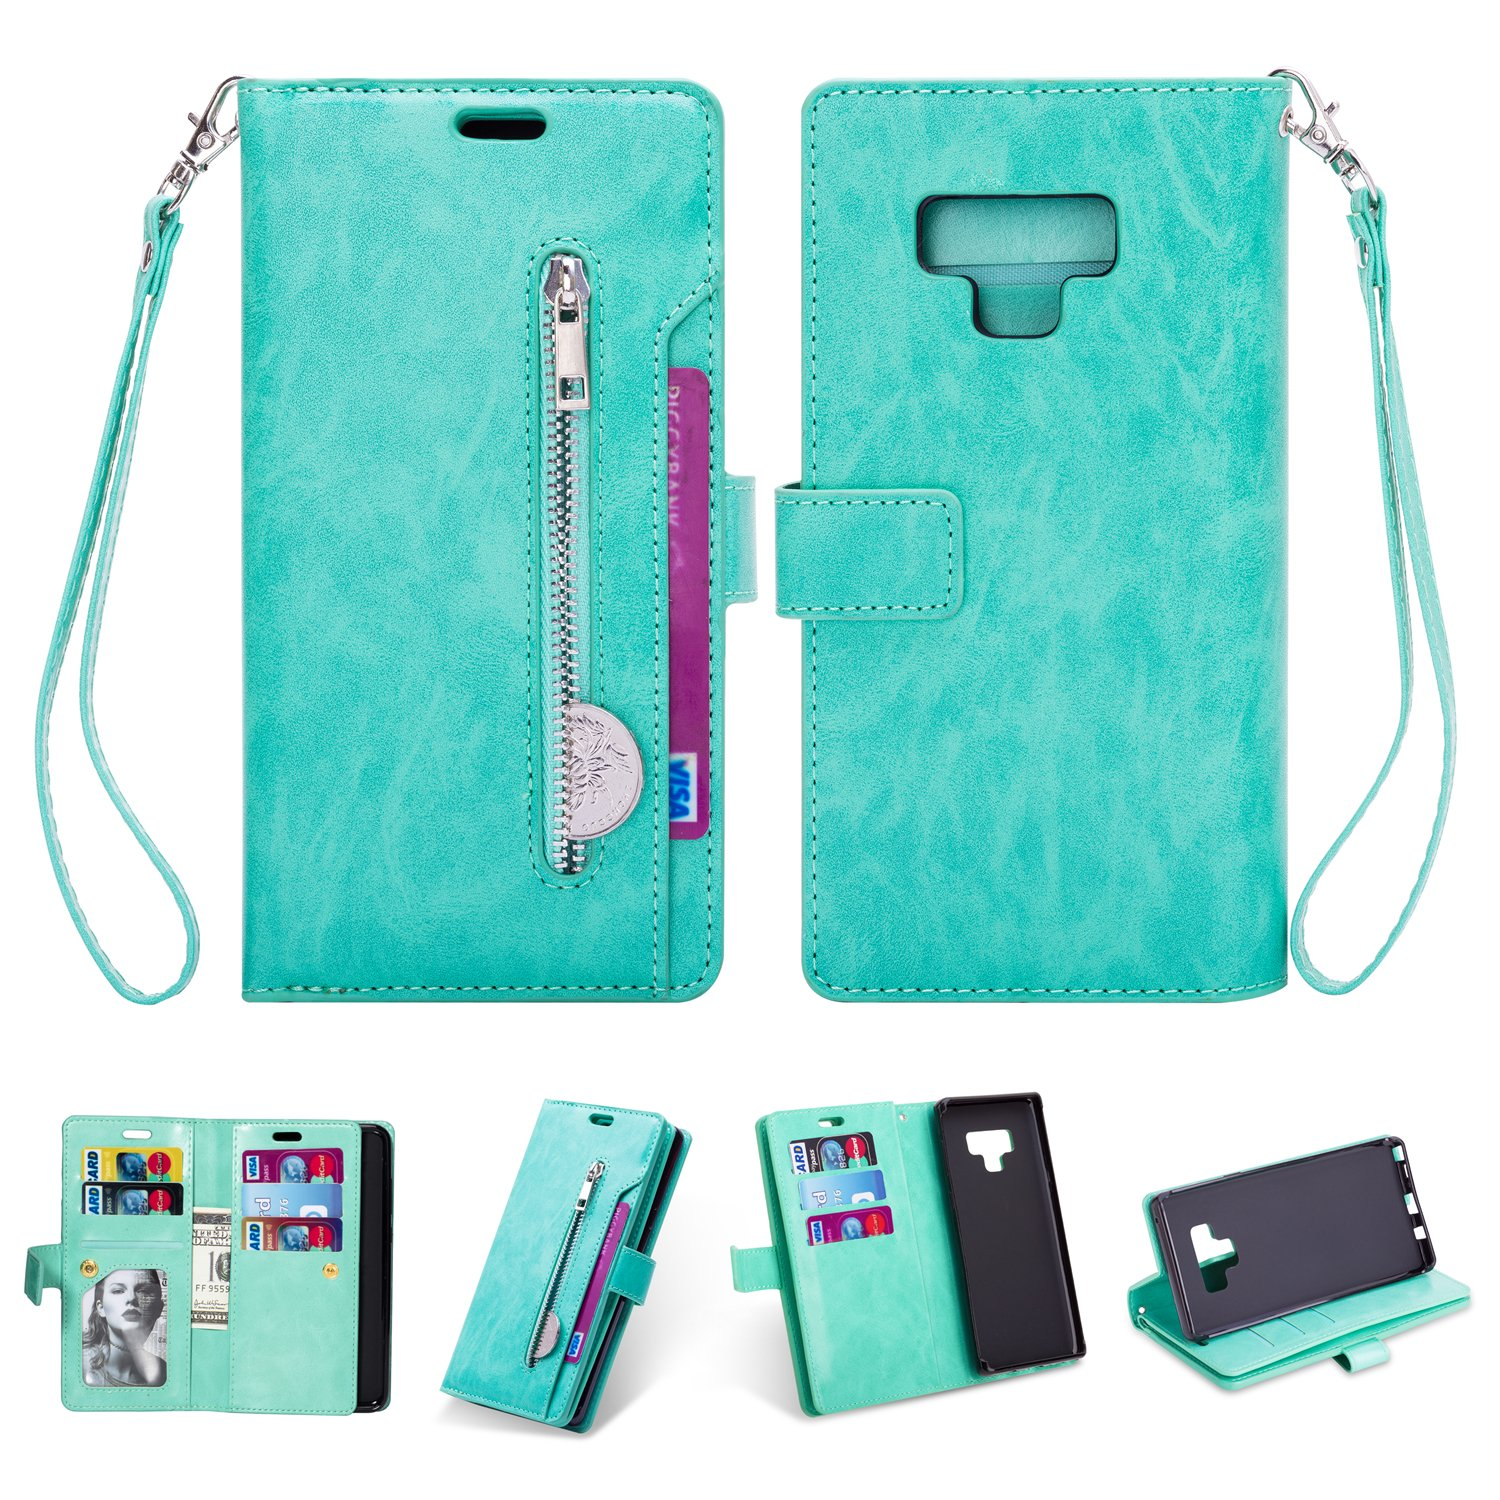 Sammid 2018 Case Galaxy Note 9, 6.4 inch Luxury PU Leather Hands-Free Stand Wallet Case with Built-in Credit Card/ID Card Slots for Samsung Galaxy Note 9 - Green